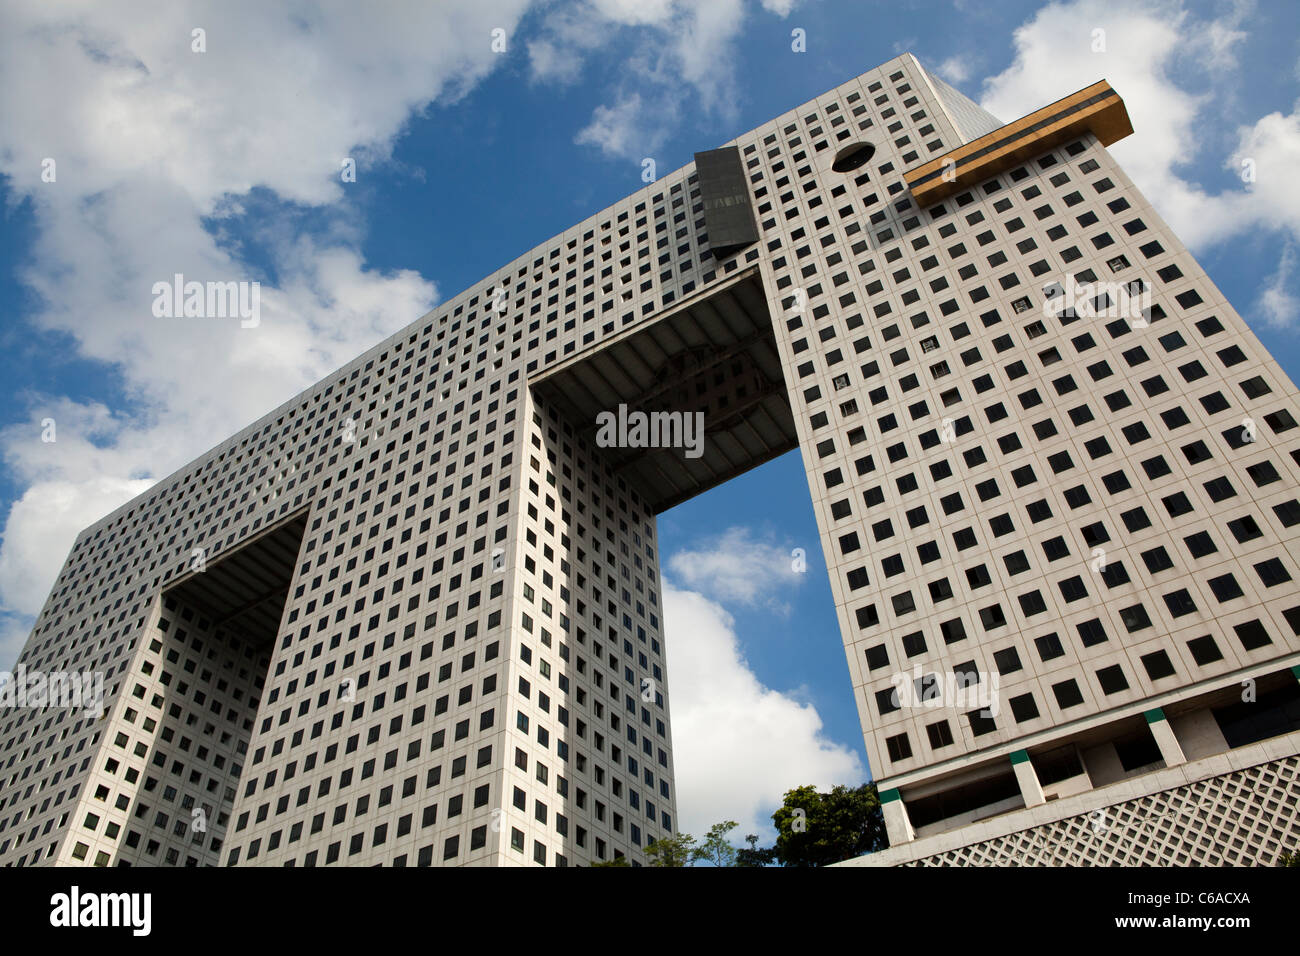 The Elephant Building is one of the most famous buildings in Bangkok thanks to its resemblance to an elephant. - Stock Image